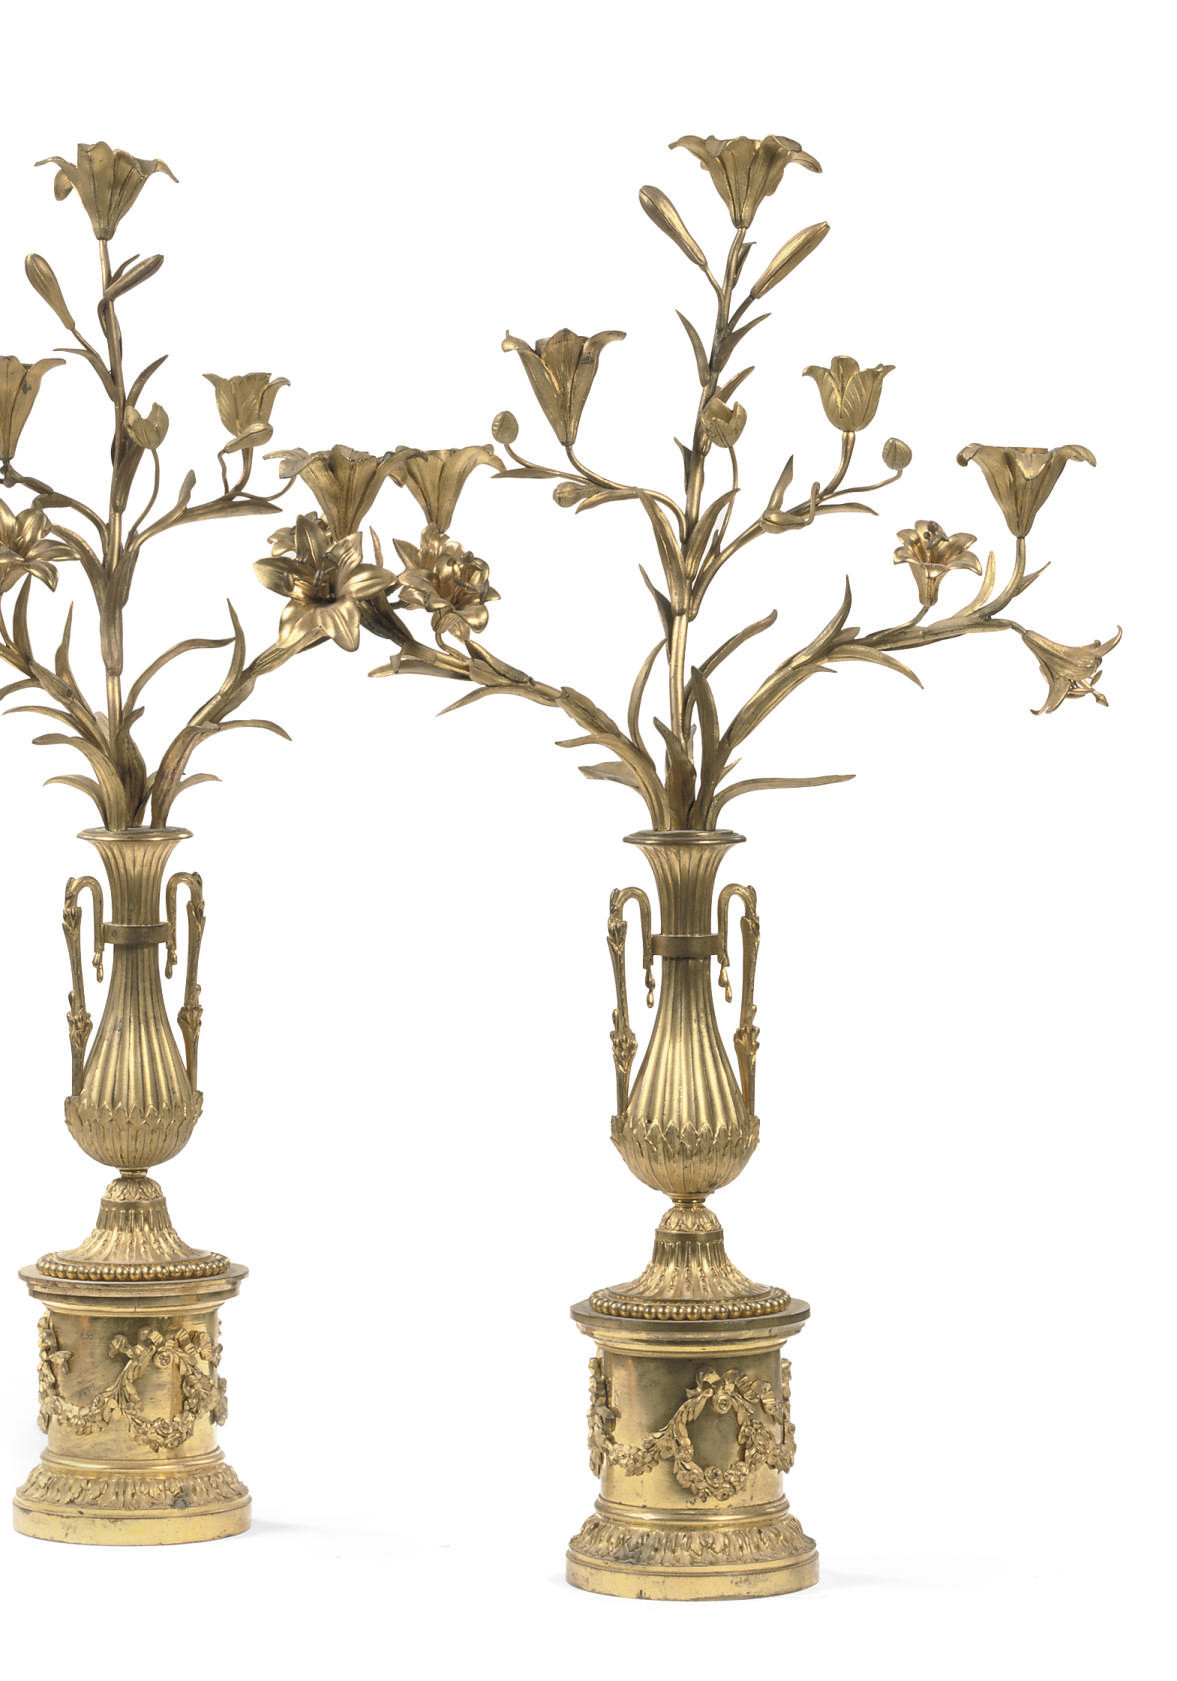 A PAIR OF FIVE-LIGHT ORMOLU CA